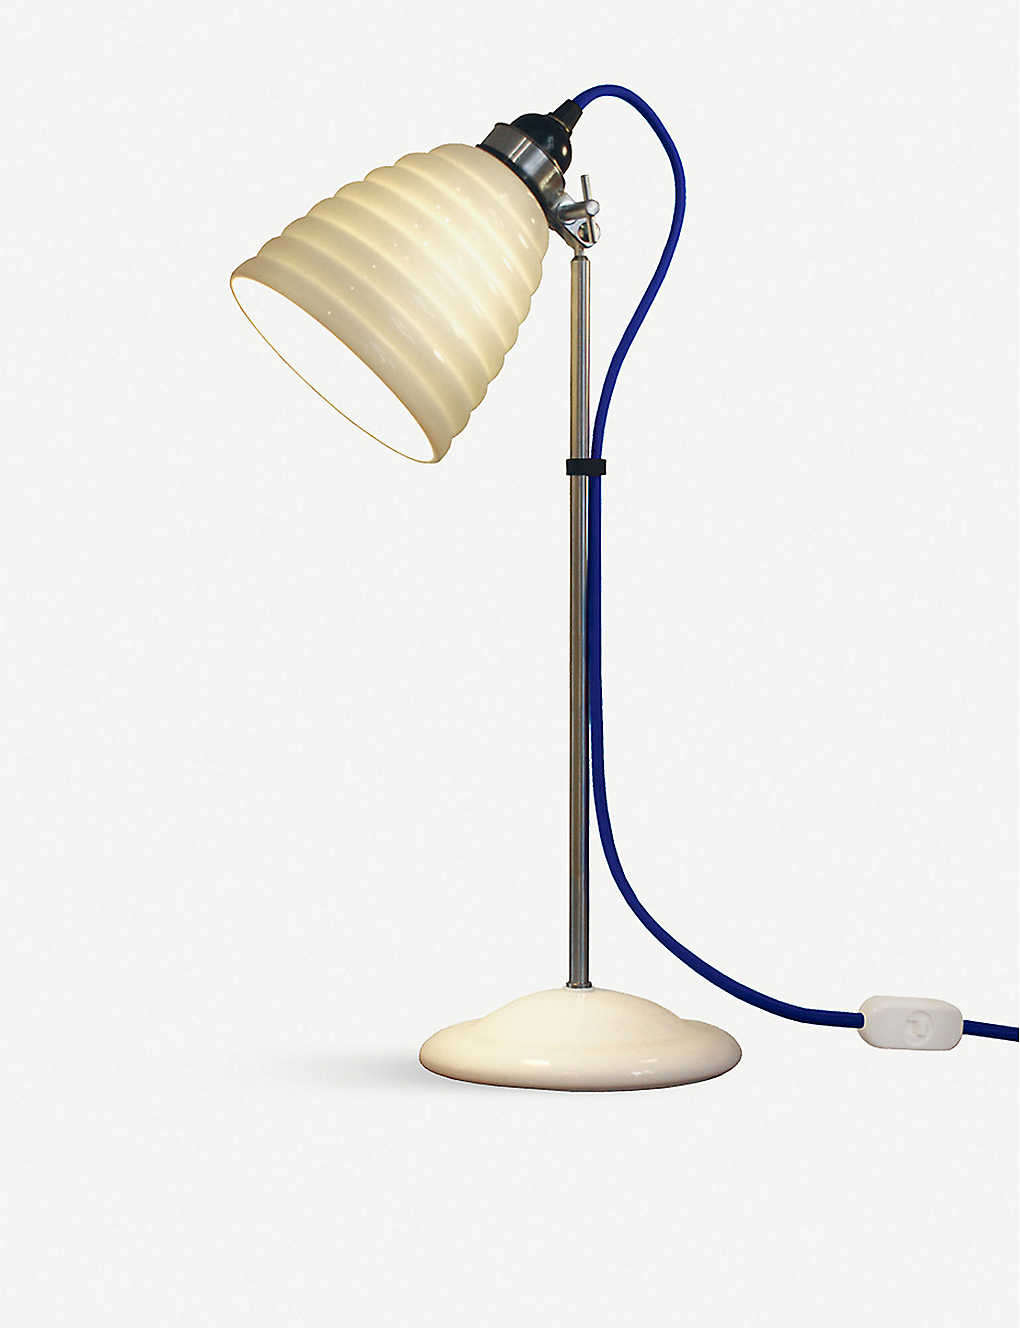 THE CONRAN SHOP: Original BTC Lighting Hector Bibendum table lamp 46cm